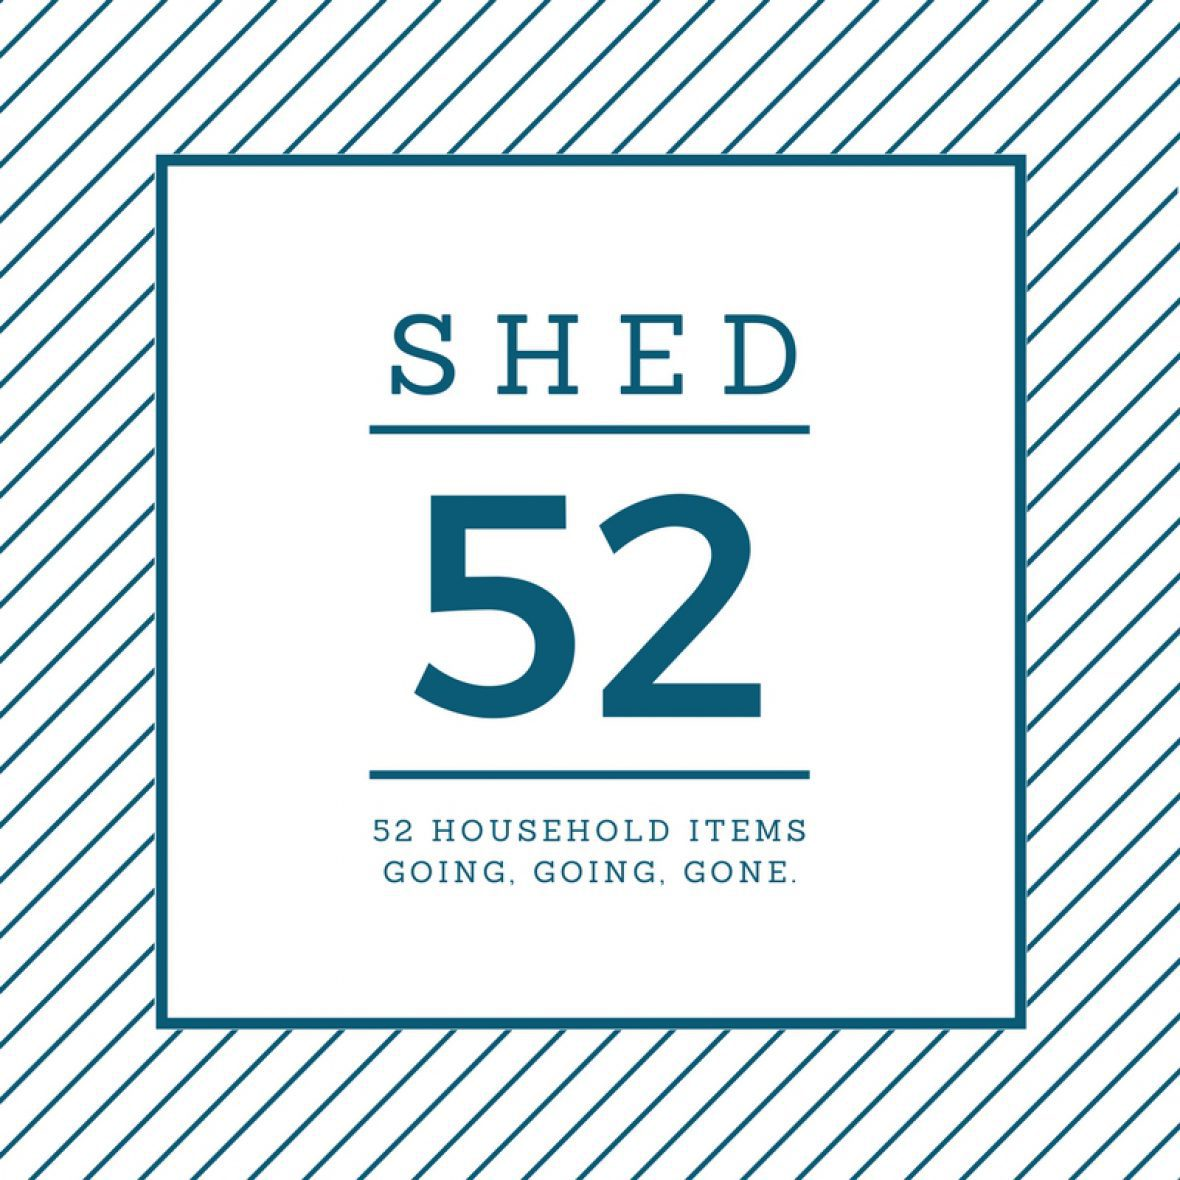 Shed 52